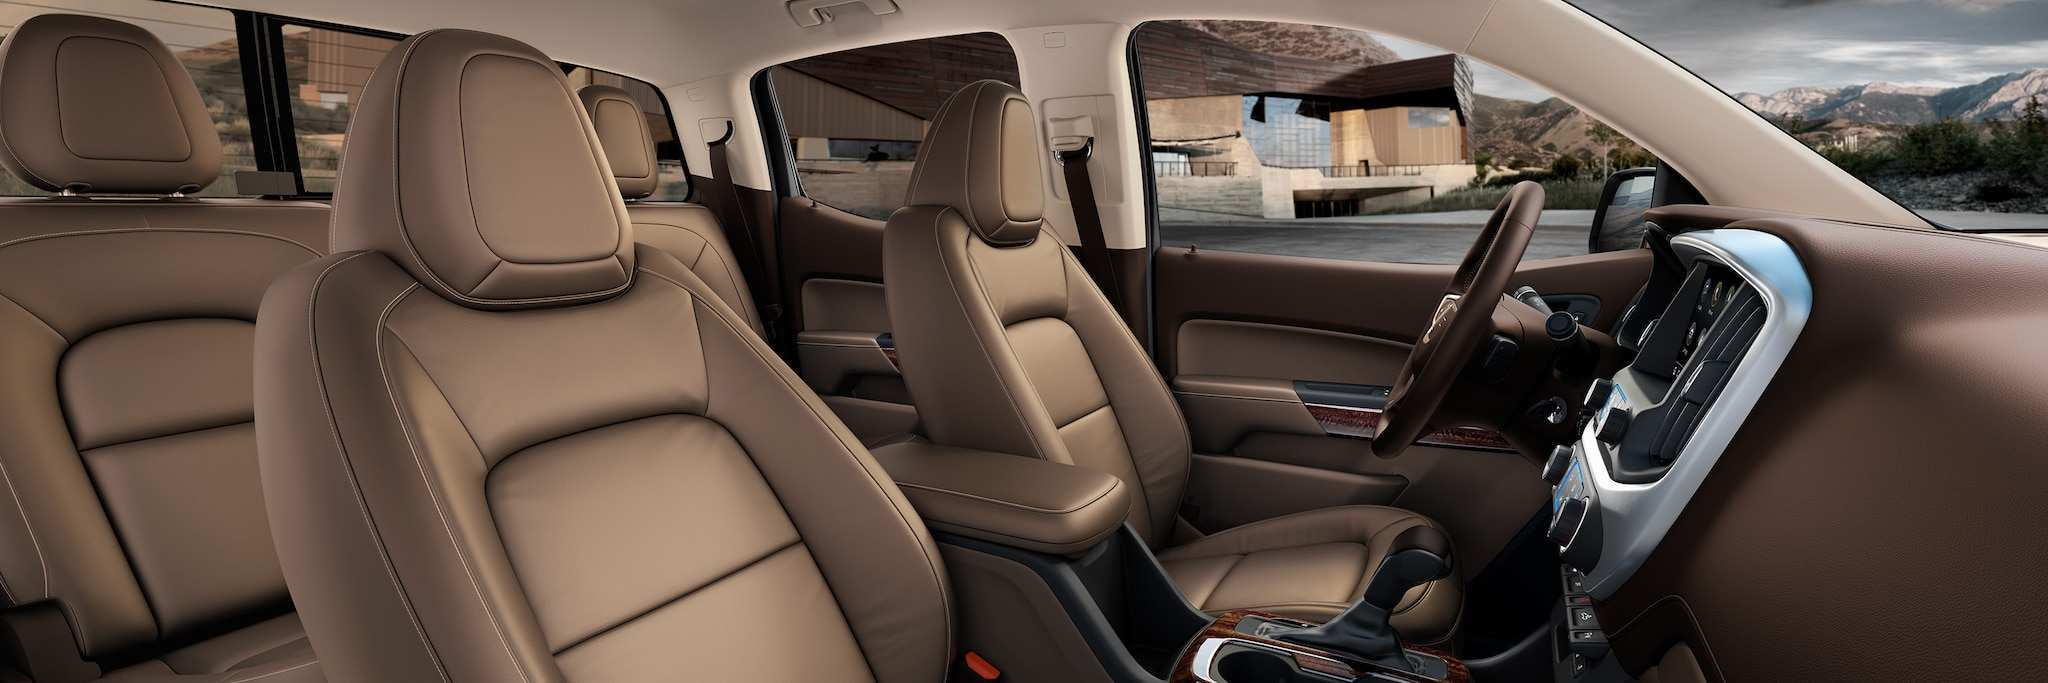 31 A 2019 Gmc Features Configurations